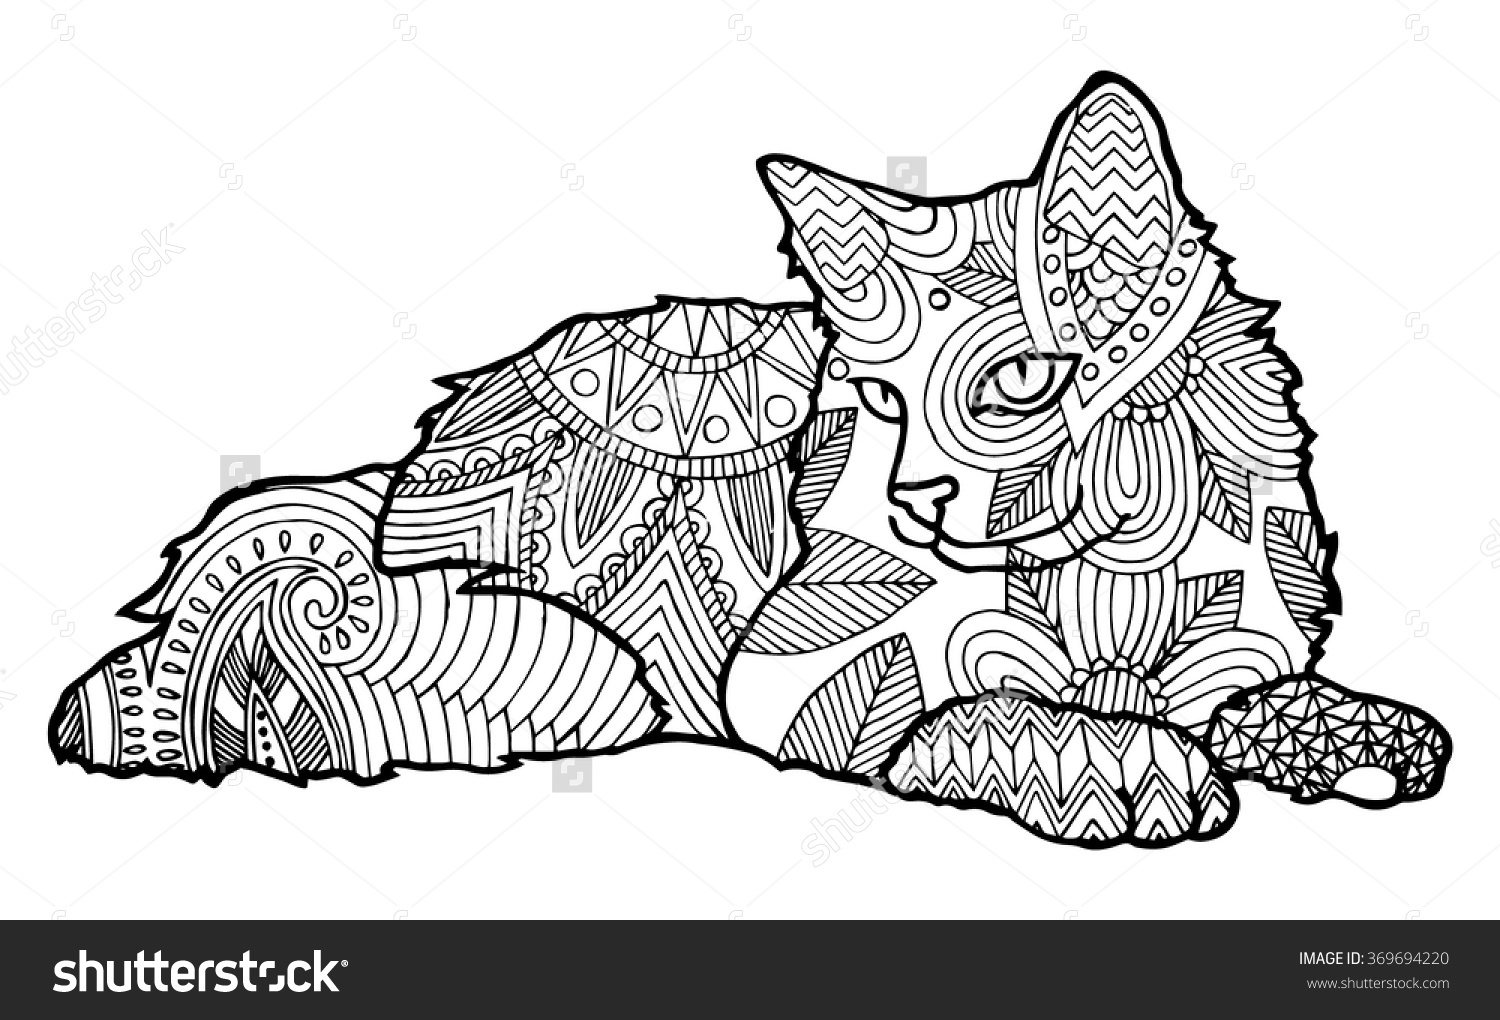 Endorsed Cat Coloring Pages Free Large Images 2846 In For Adults